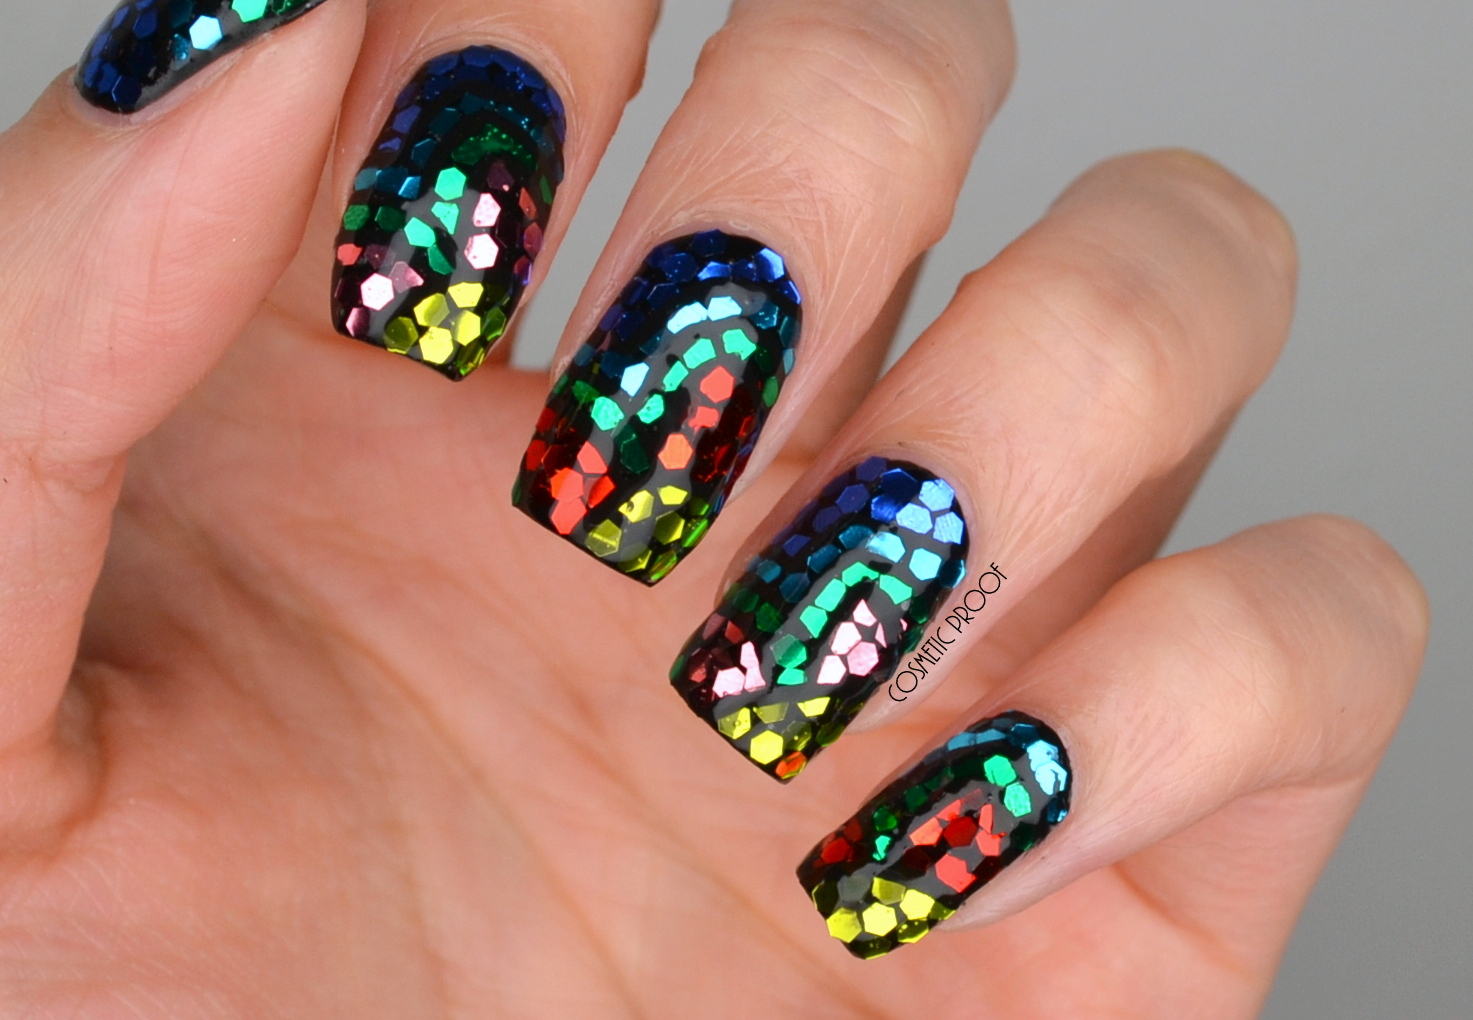 Nails Bcd Nail Art Challenge Week 4 Mosaic Stained